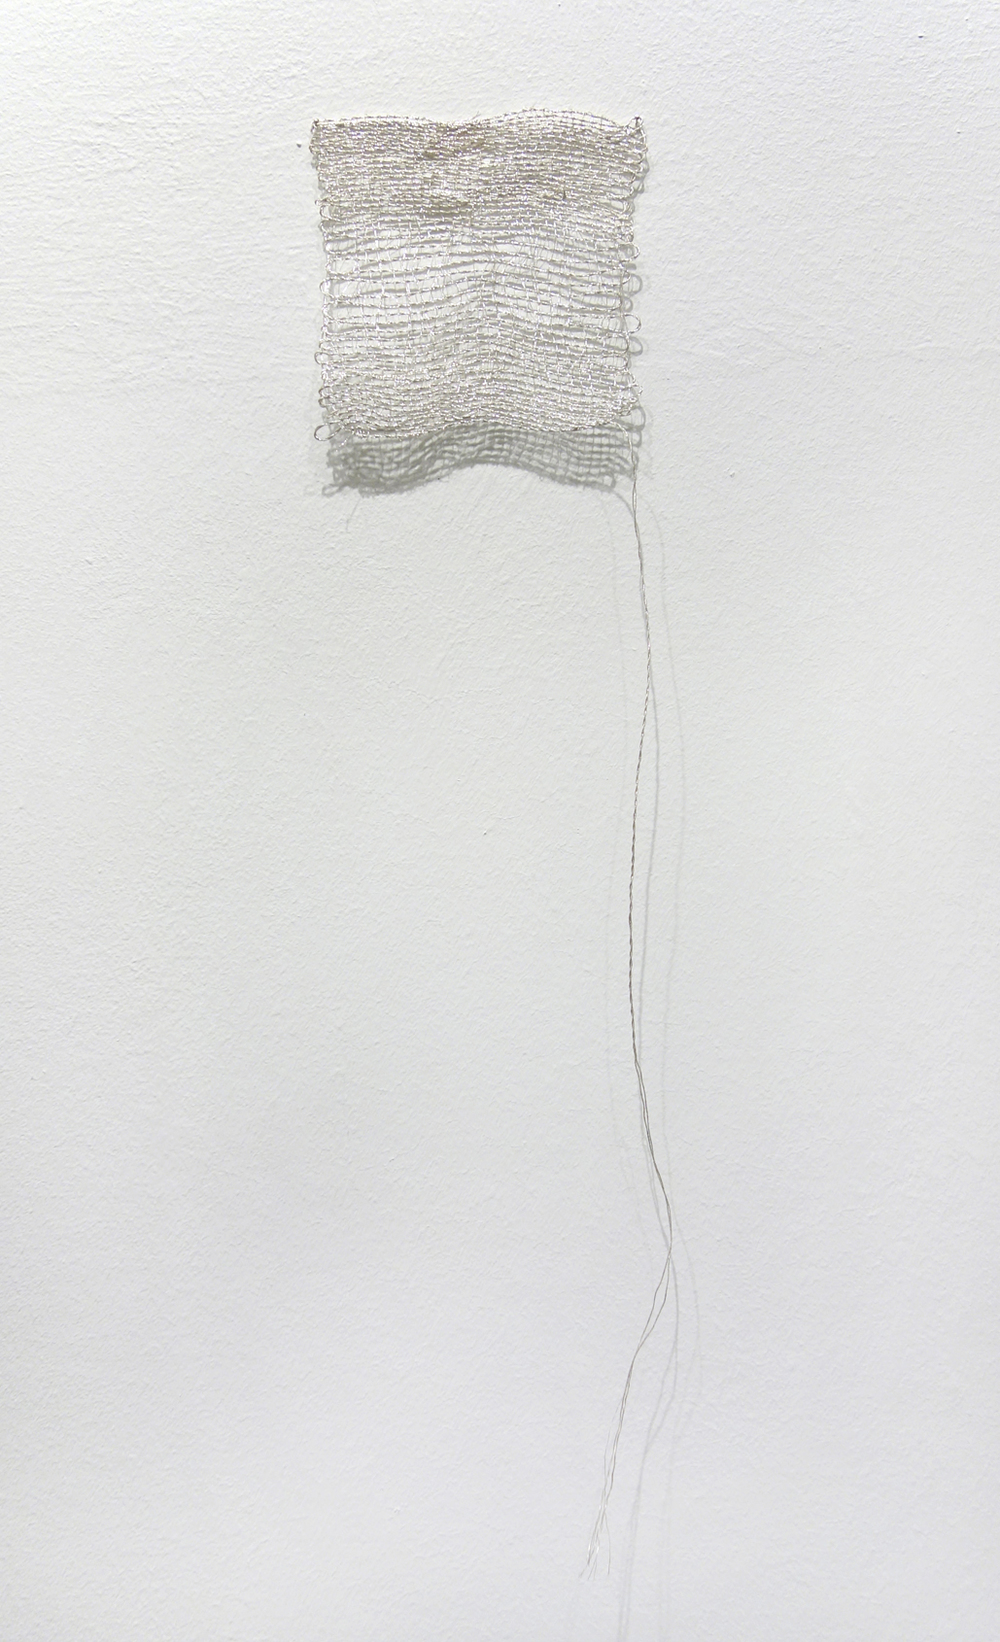 Izziyana Suhaimi, Small Studies of an Everyday Practice IV, 2014, Silver thread; woven, H43 x W11 cm.jpg